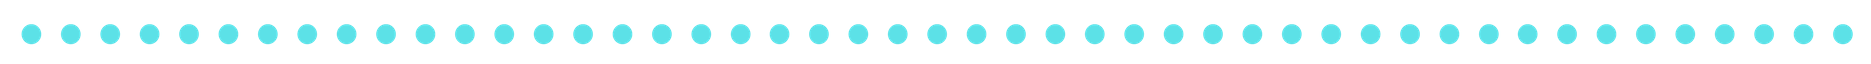 Dotted Line Teal (1).png